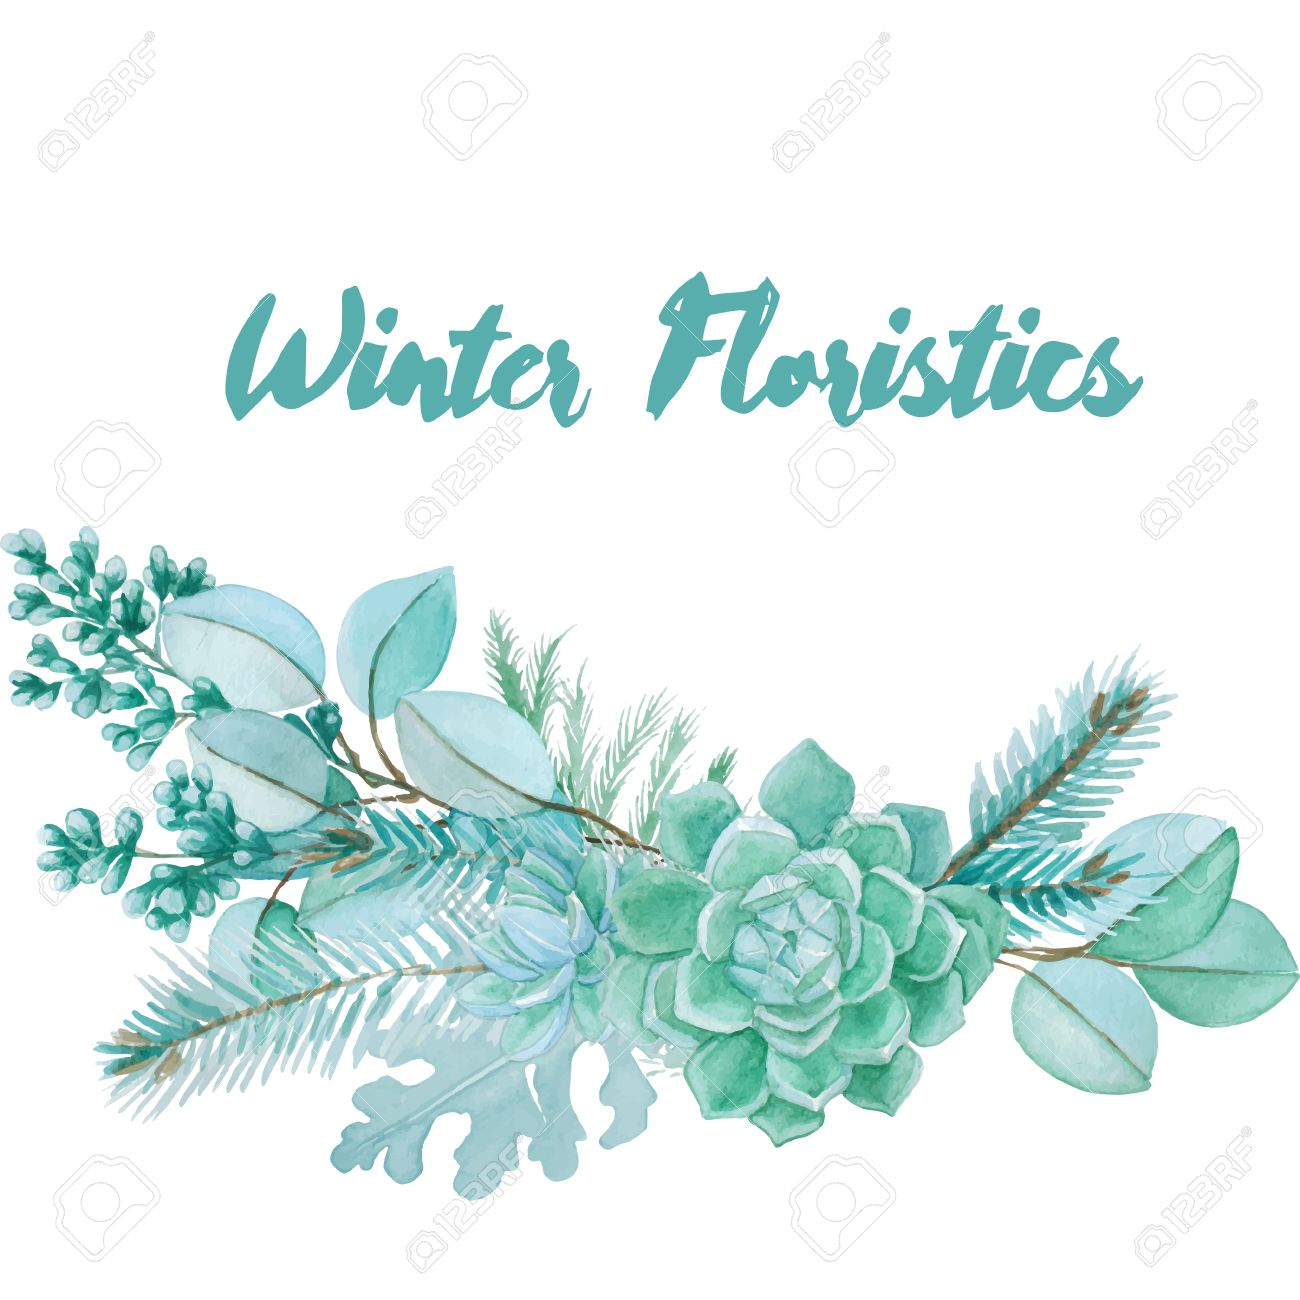 Silver Leaf Decoration Winter Watercolor Floristic Composition Made Of Succulents And